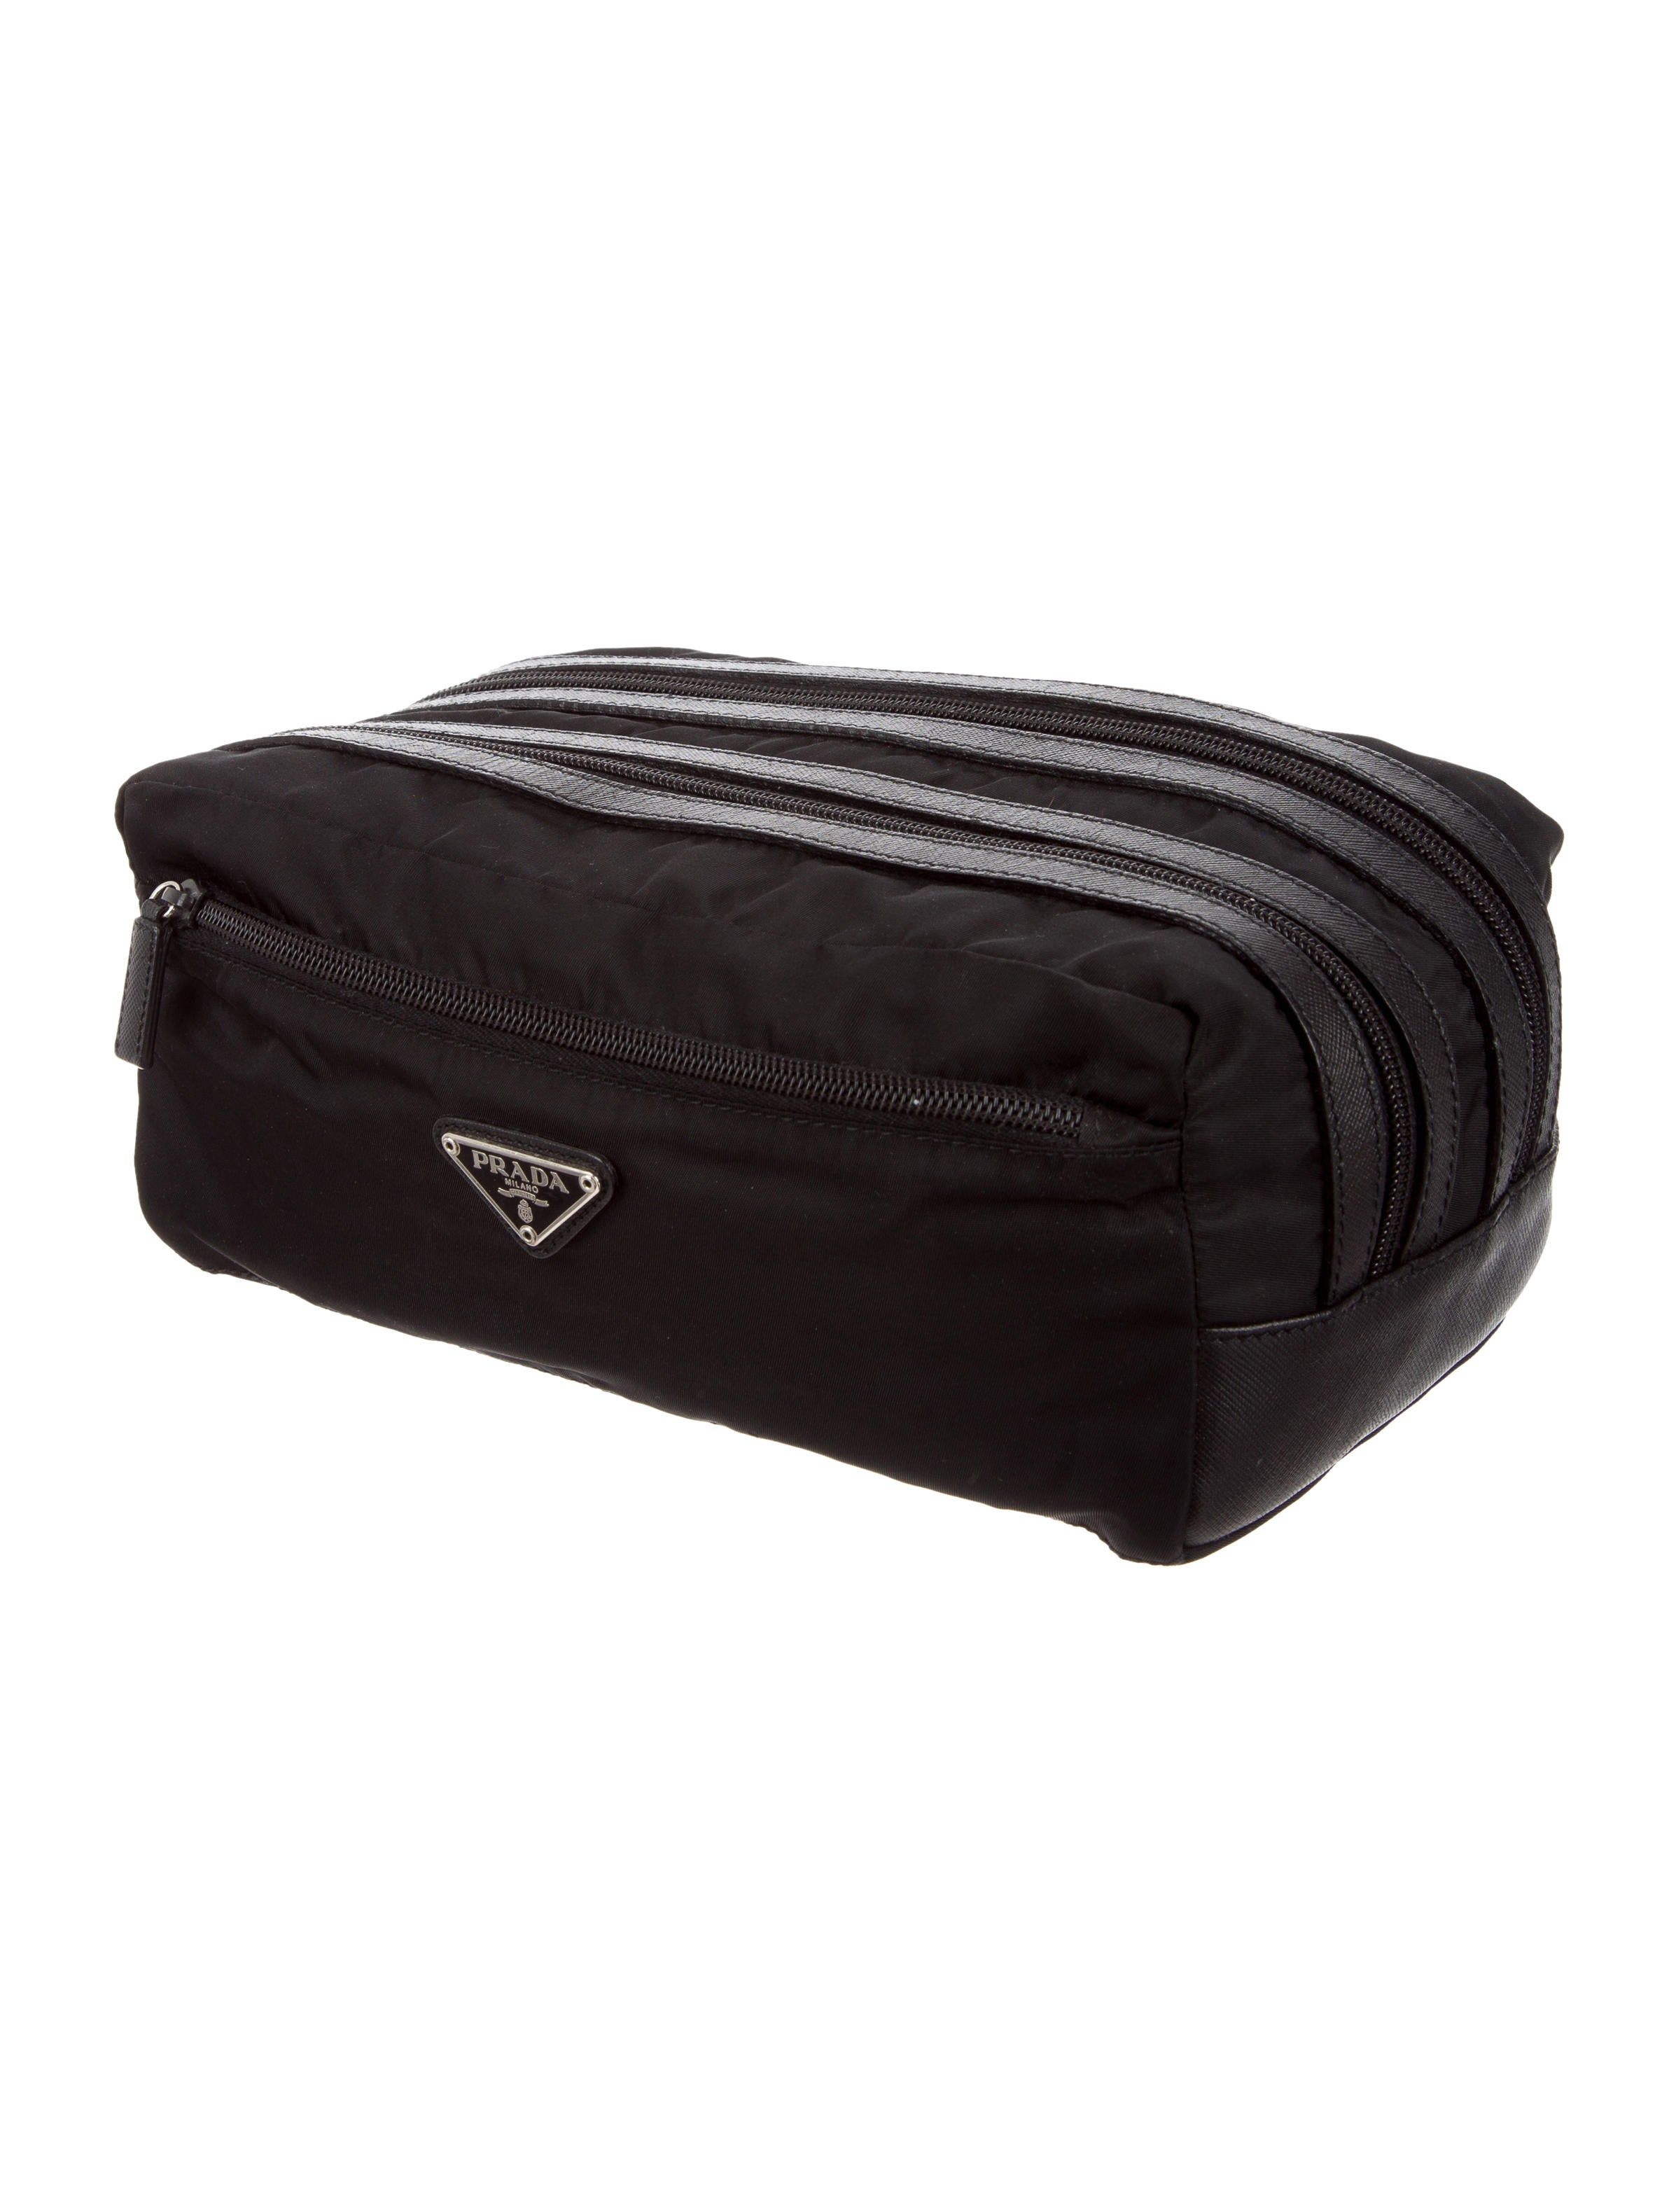 047d30441958 Prada Toiletry Bag Women's   Stanford Center for Opportunity Policy ...